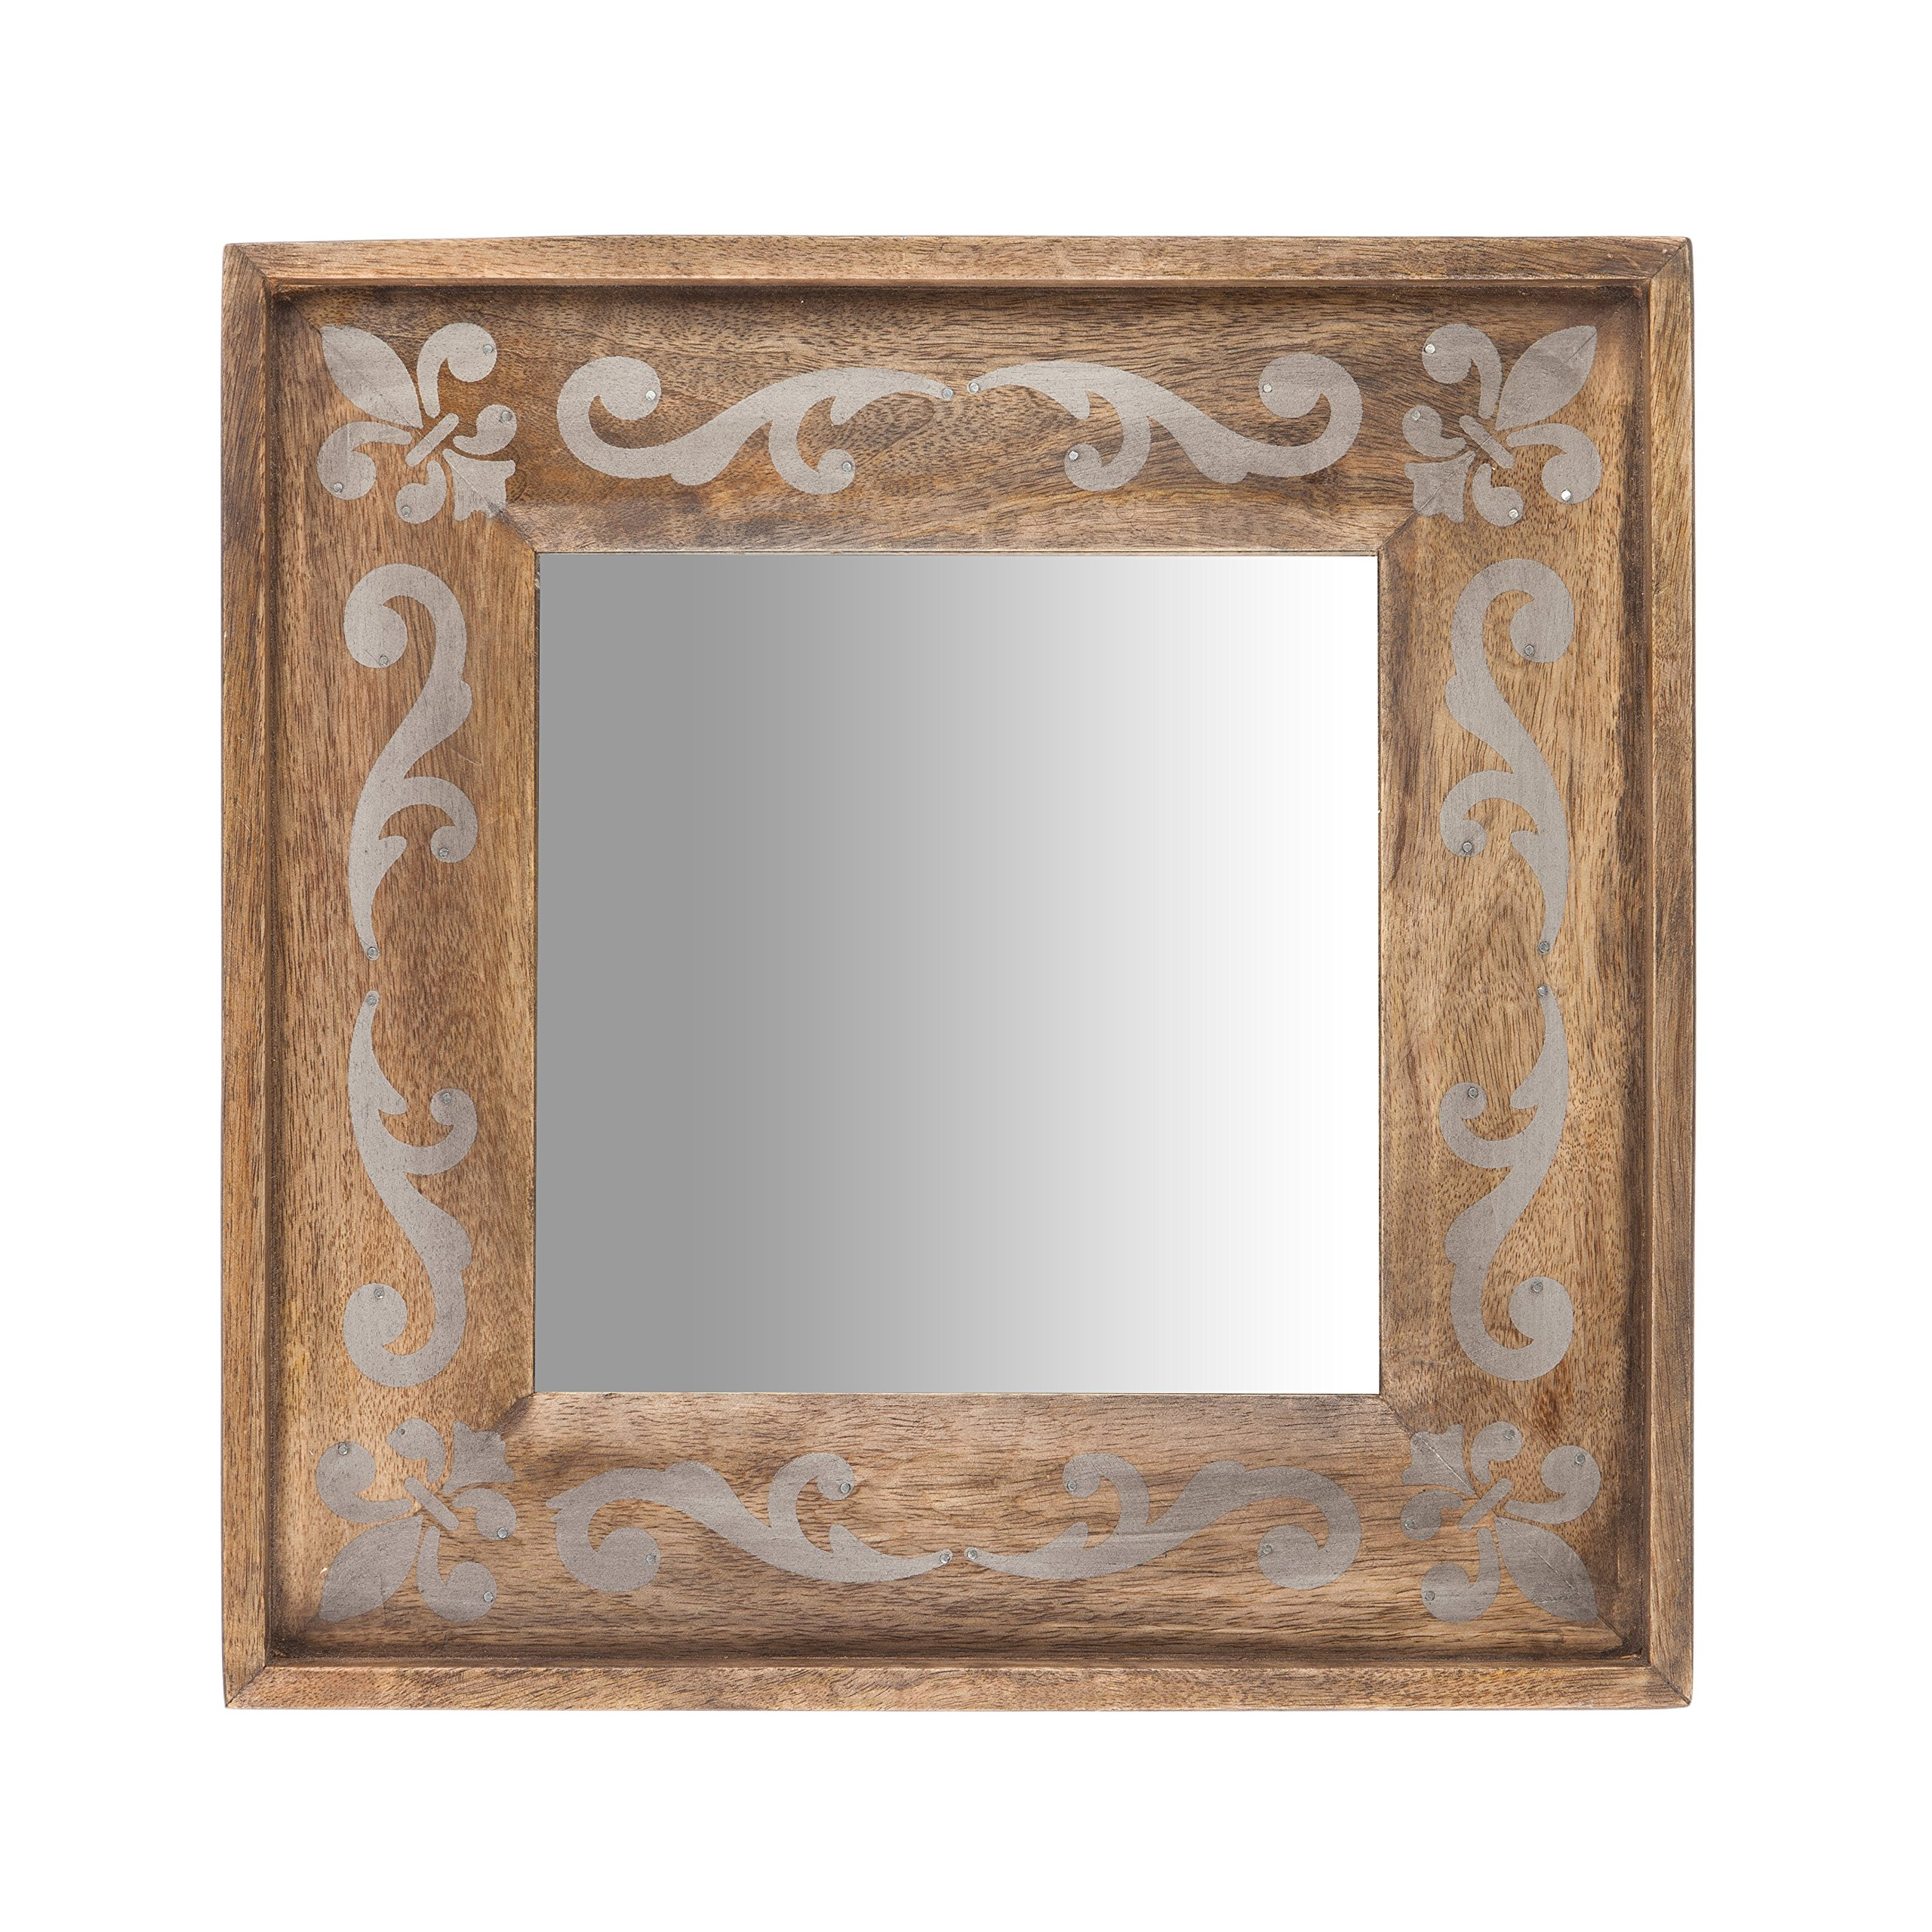 The Gerson Company 93527 14''X14'' Meadowlark Home Collection Hand Made Mango Wood Fleur DIS Lis Pattern Mirror